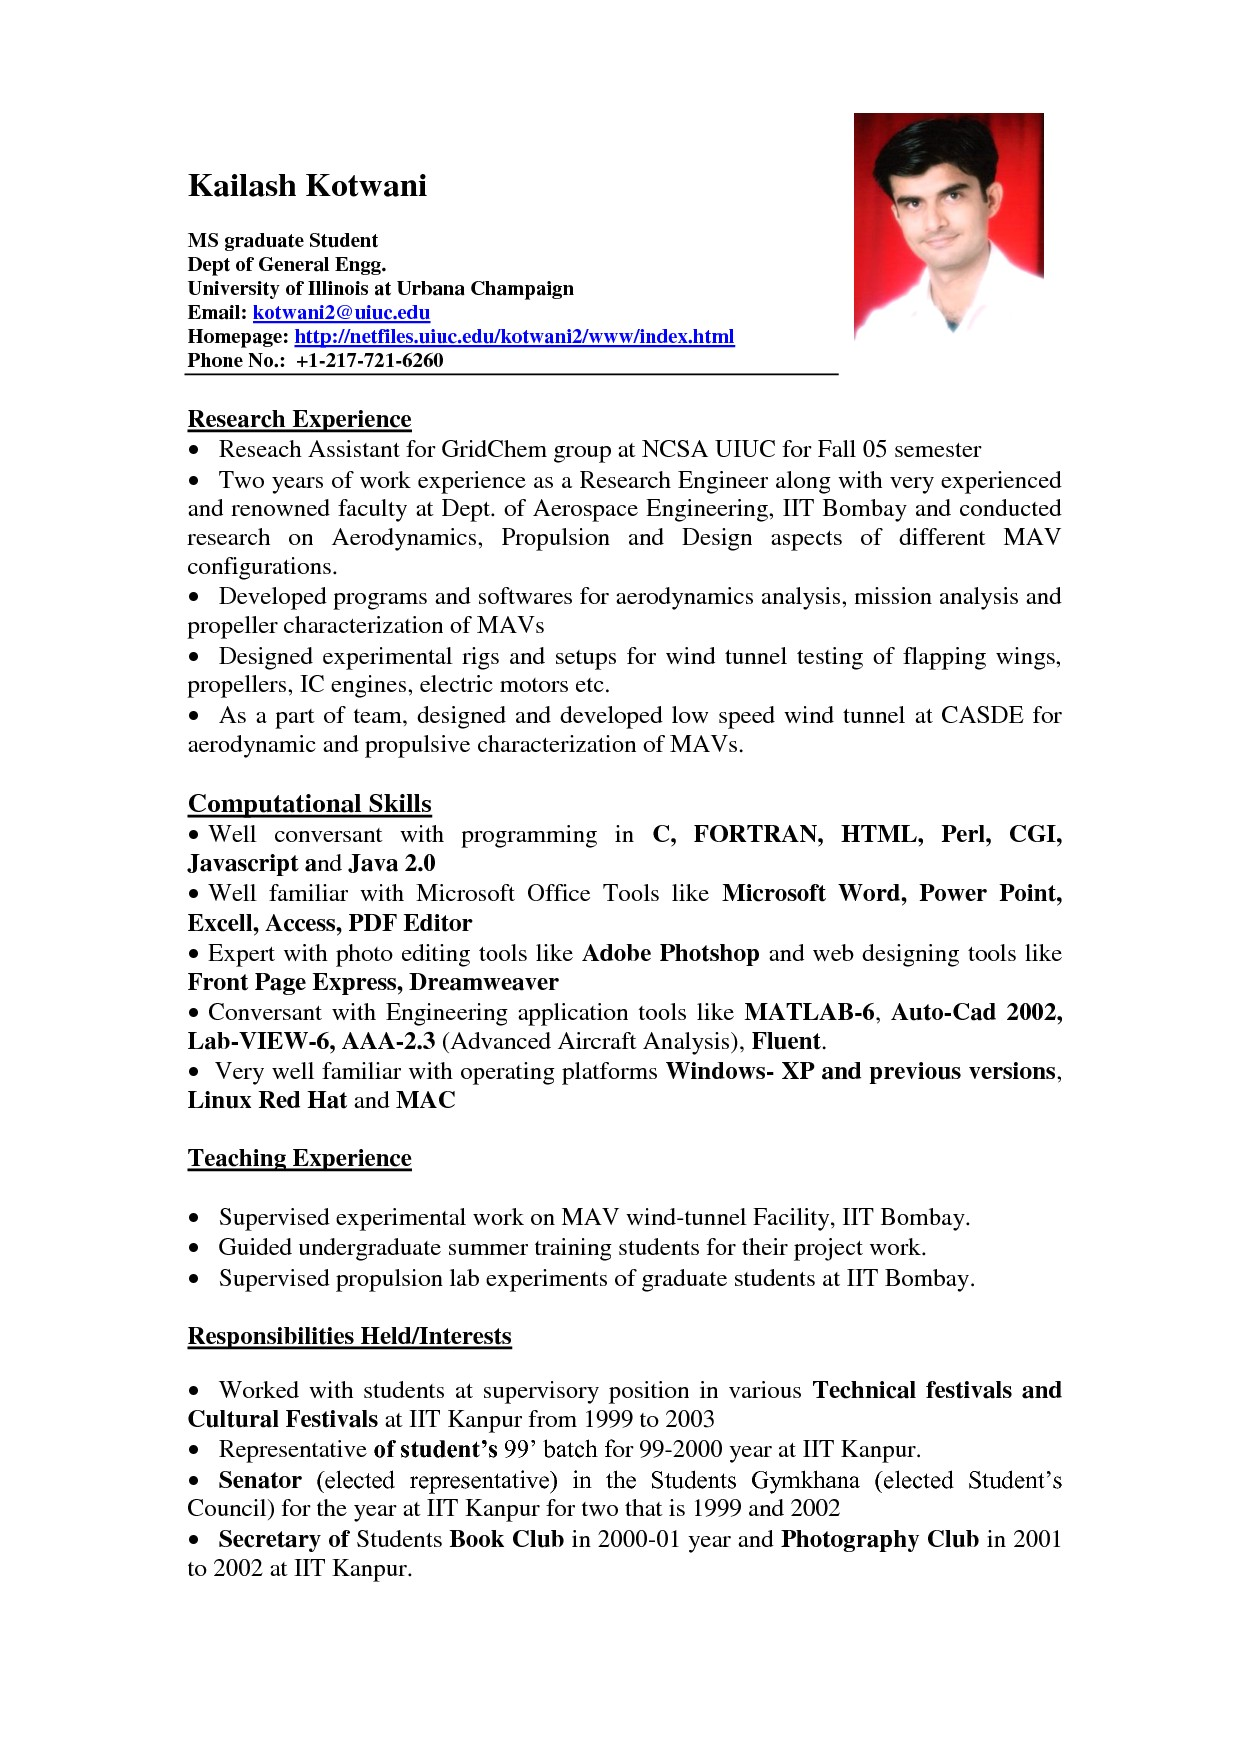 No Experience Resume Template 11 Student Resume Samples No Experience Resume